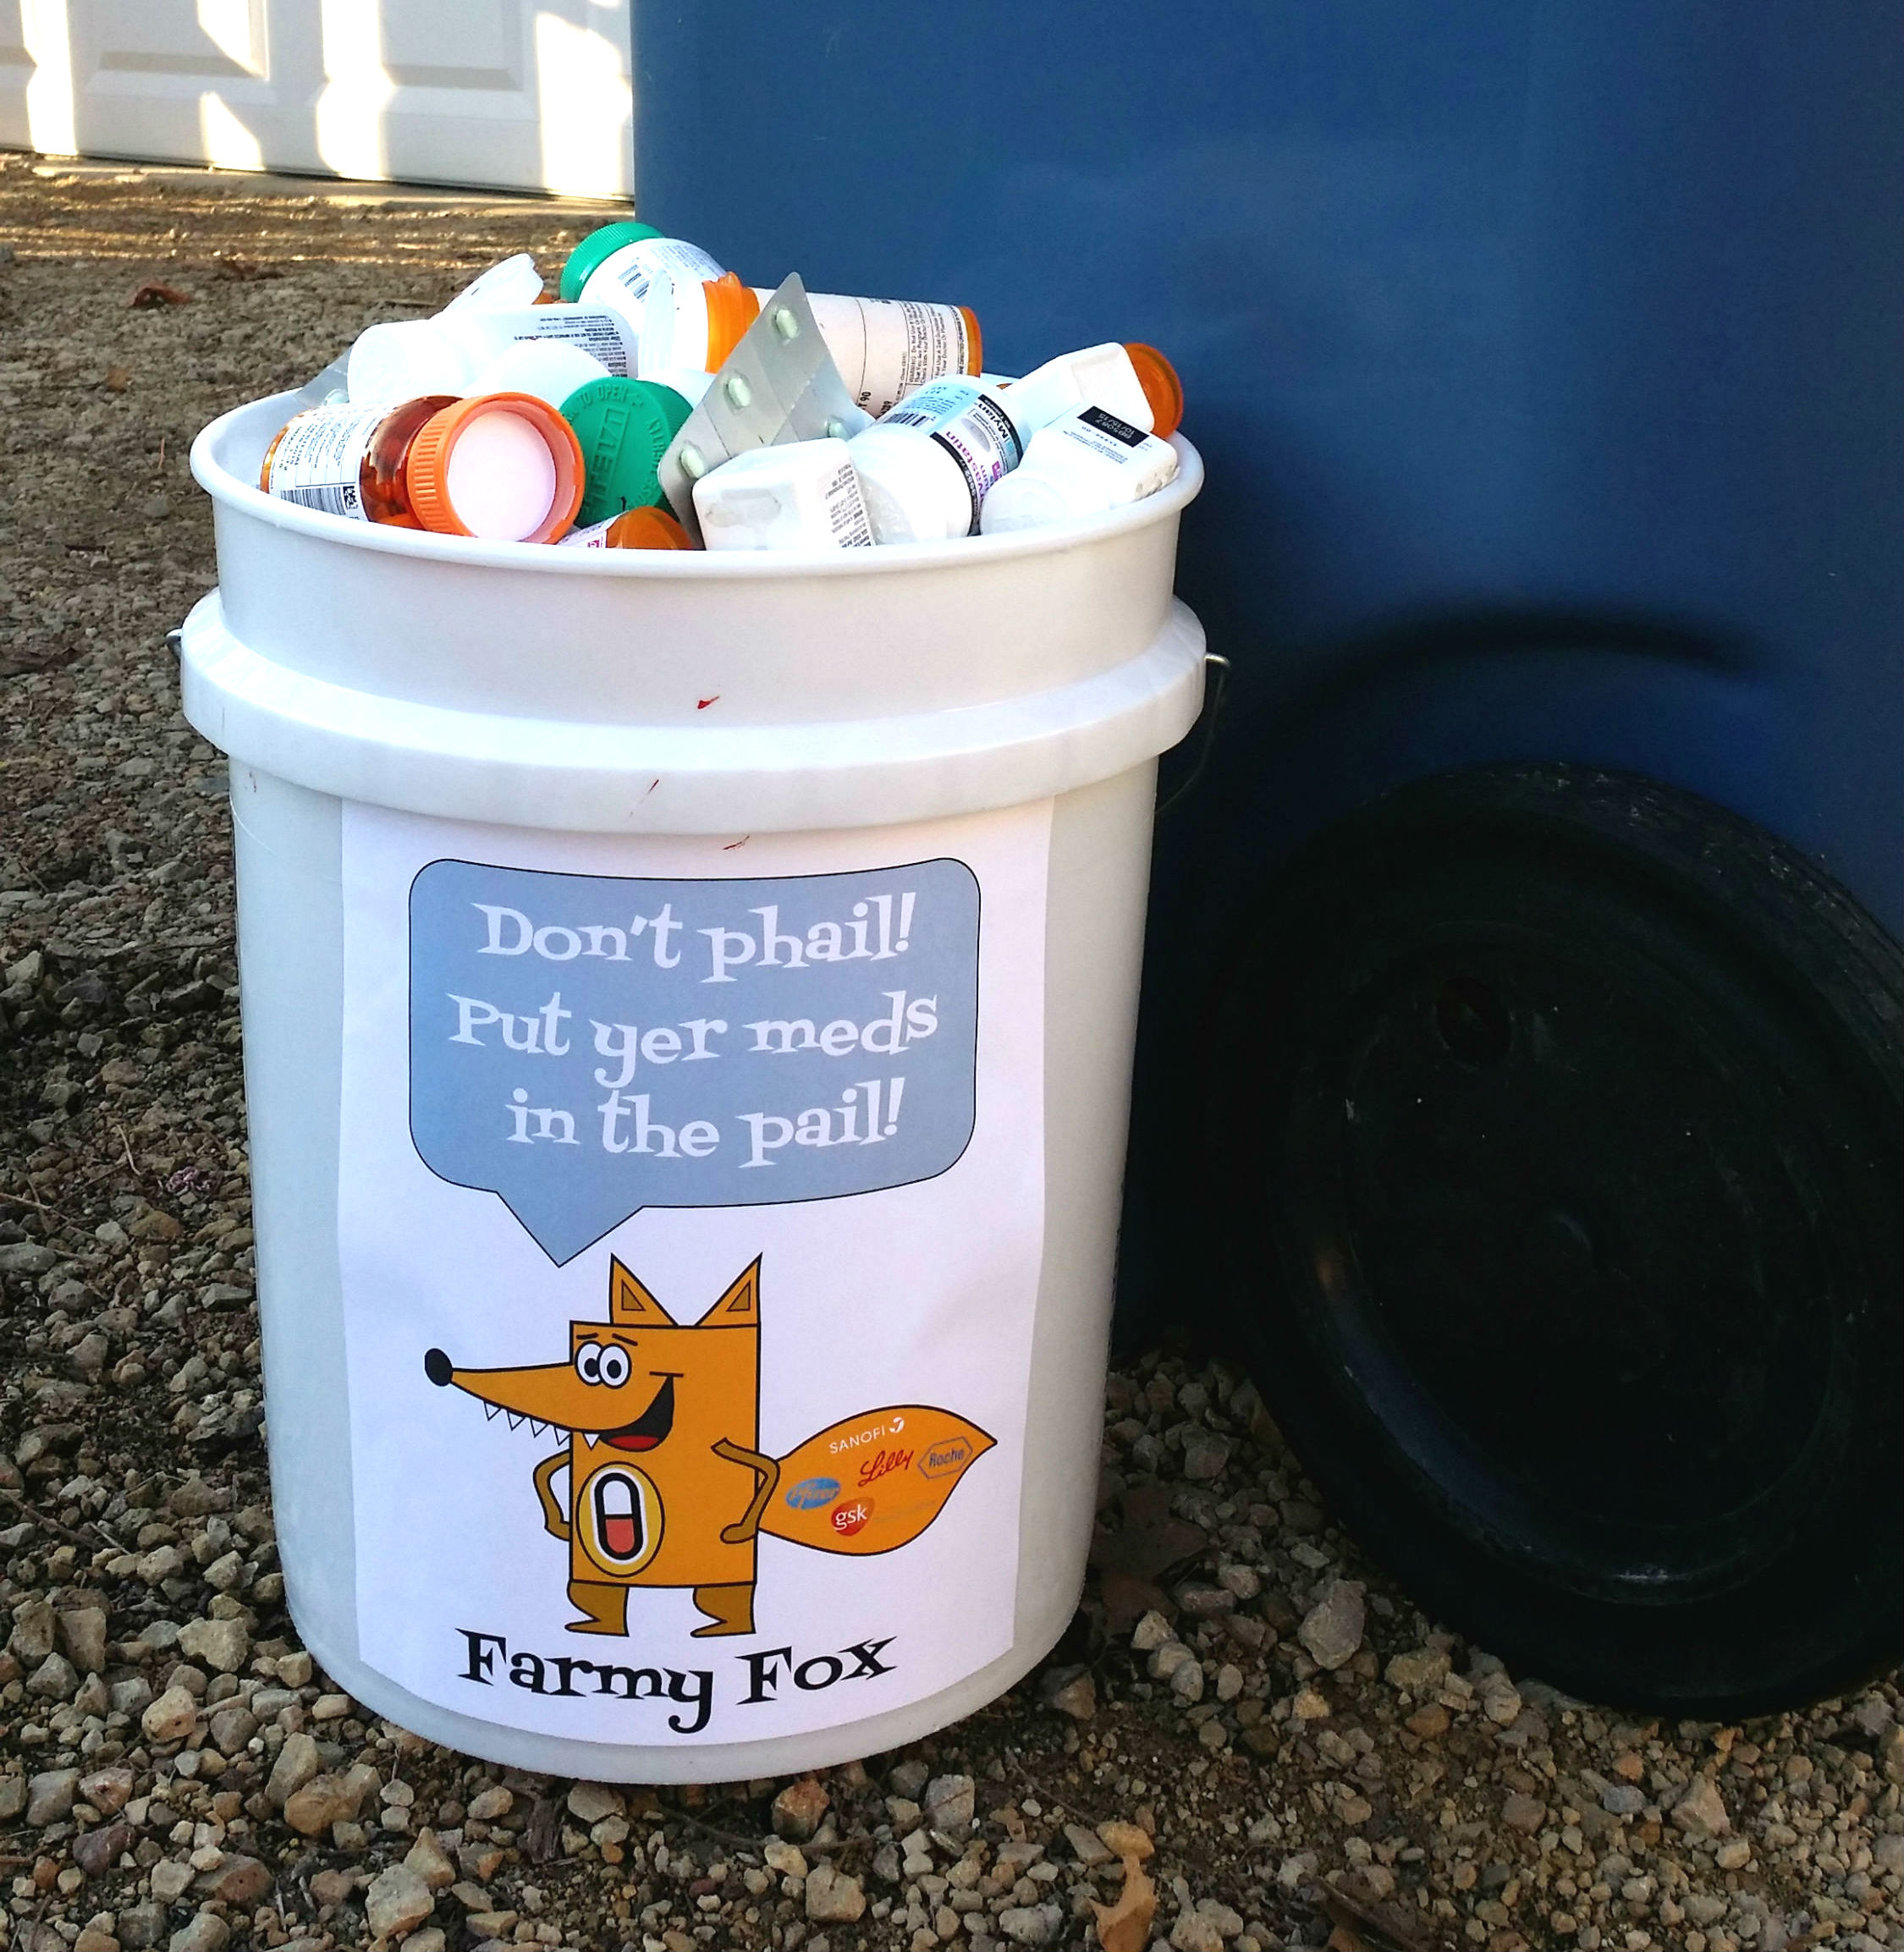 minneapolis-drug-medicine-recycling-program